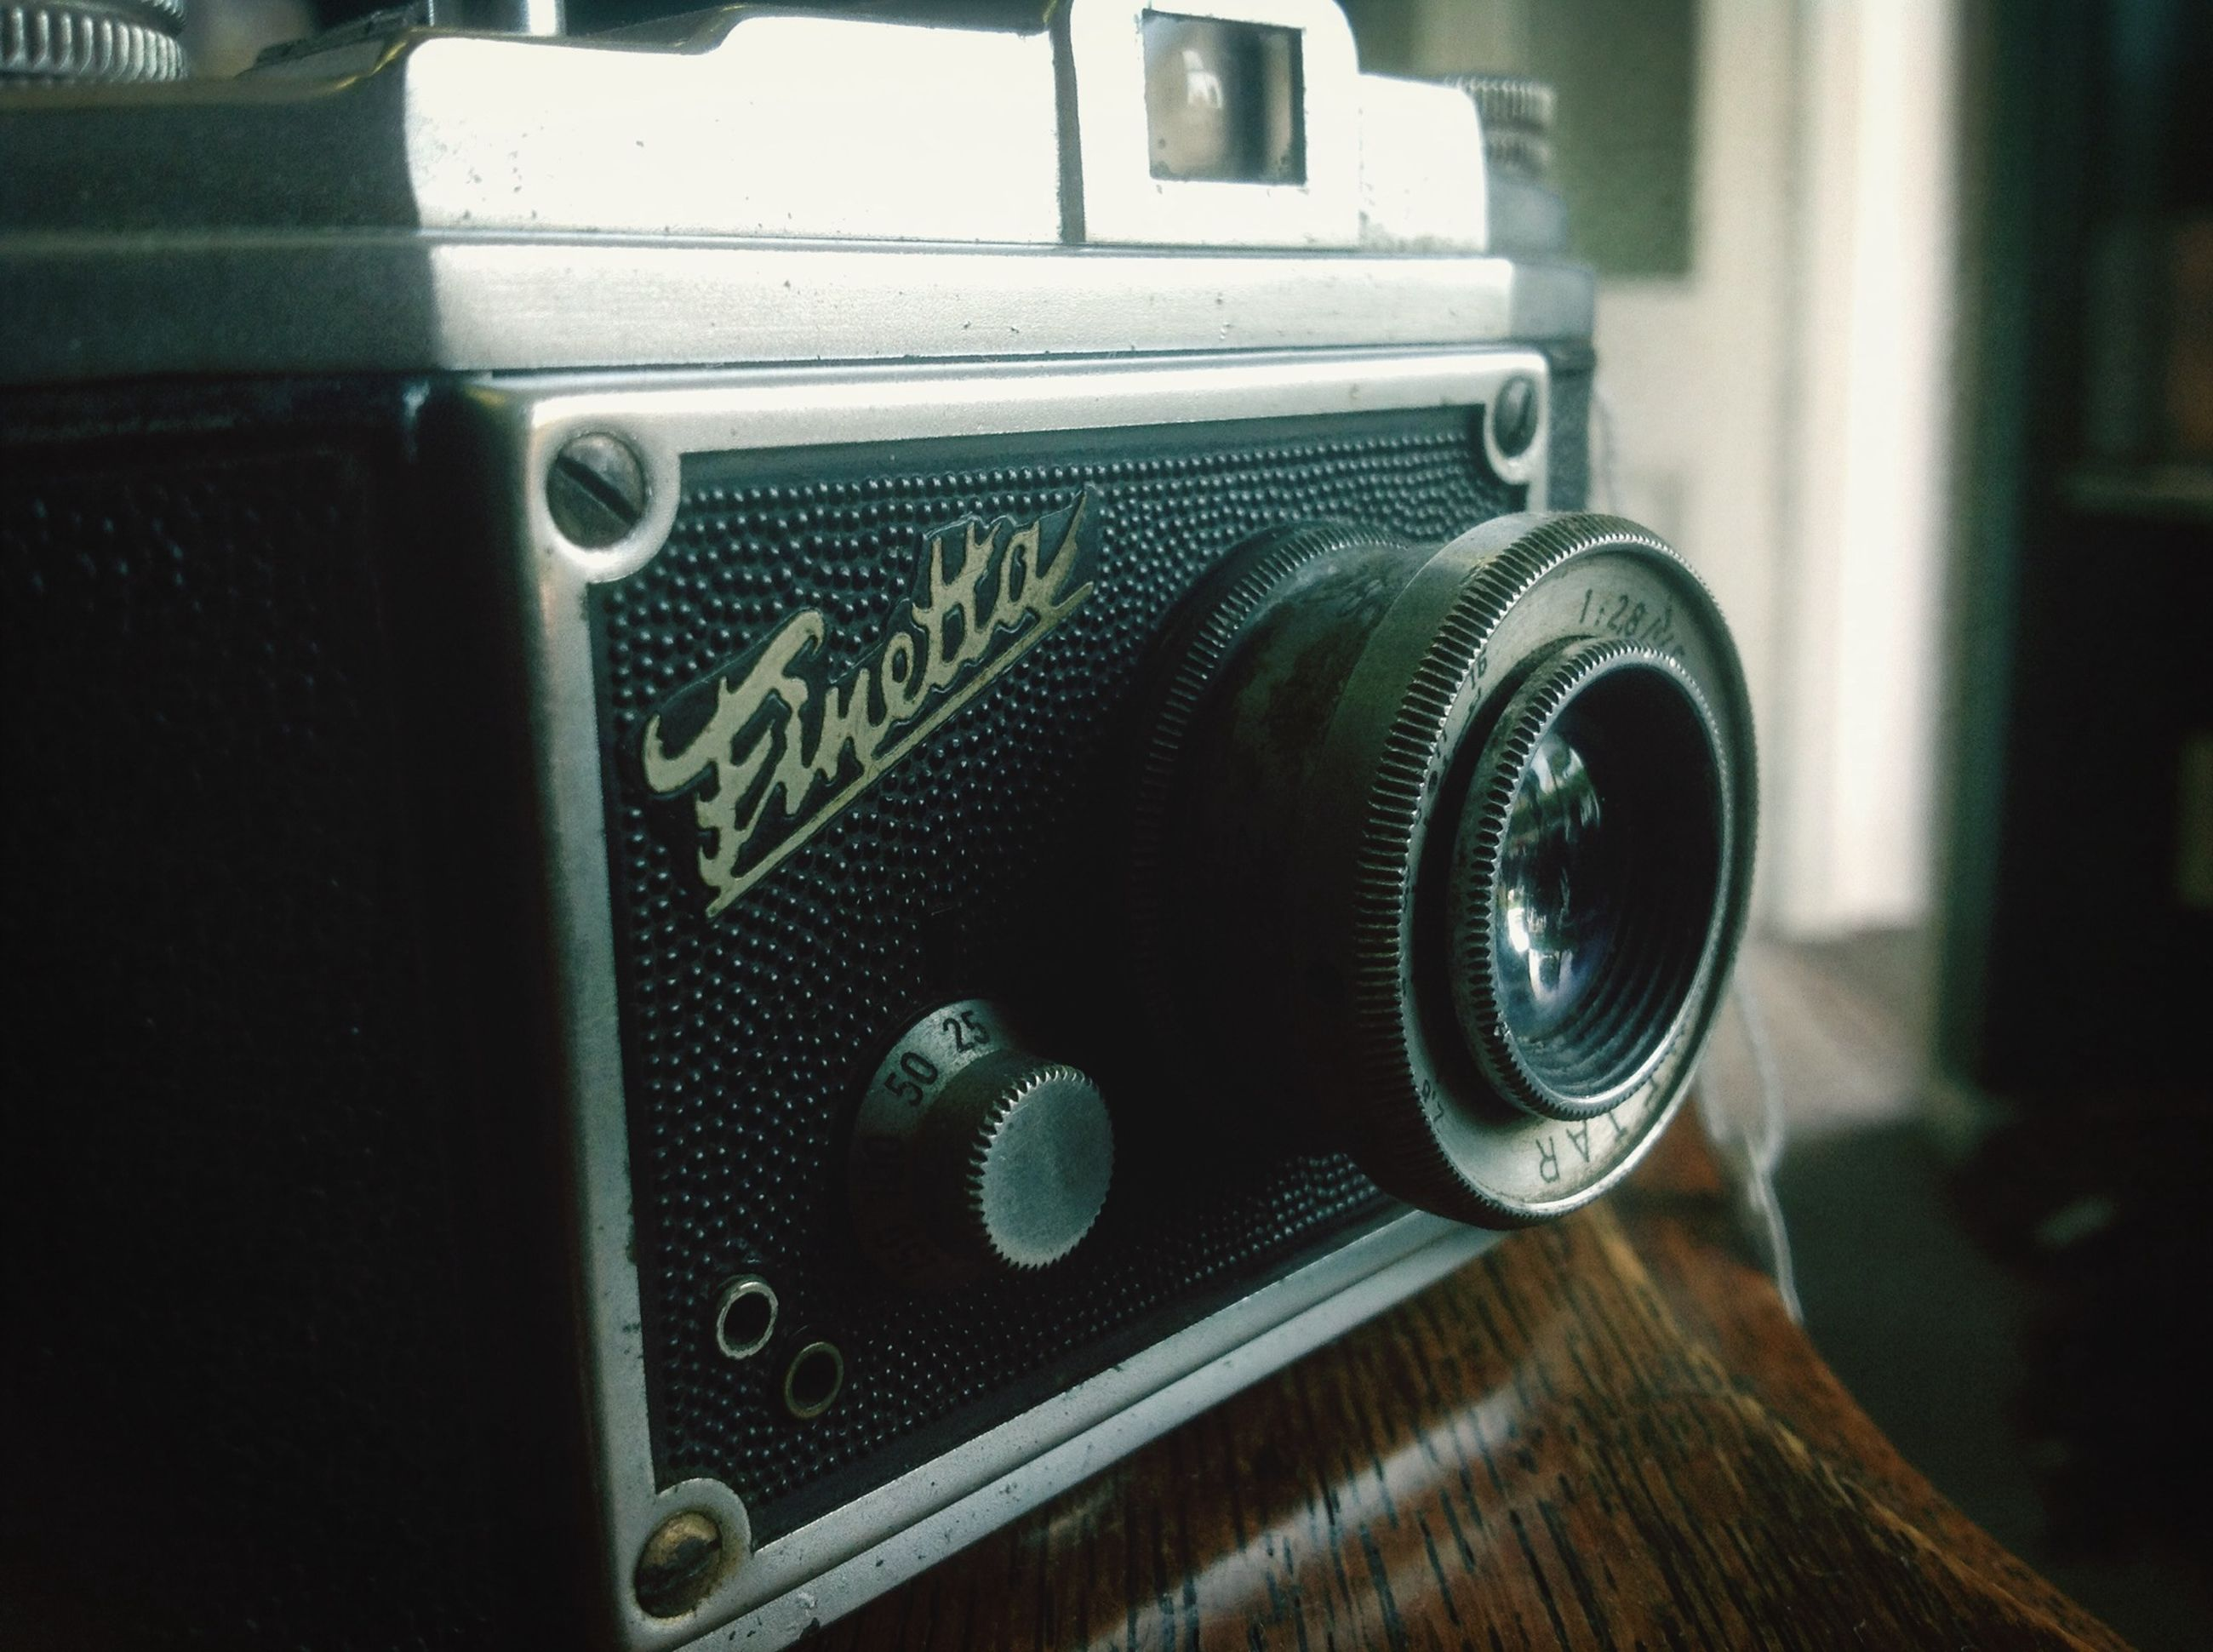 indoors, close-up, still life, technology, table, retro styled, old-fashioned, focus on foreground, equipment, selective focus, antique, metal, no people, old, photography themes, single object, vintage, home interior, high angle view, camera - photographic equipment